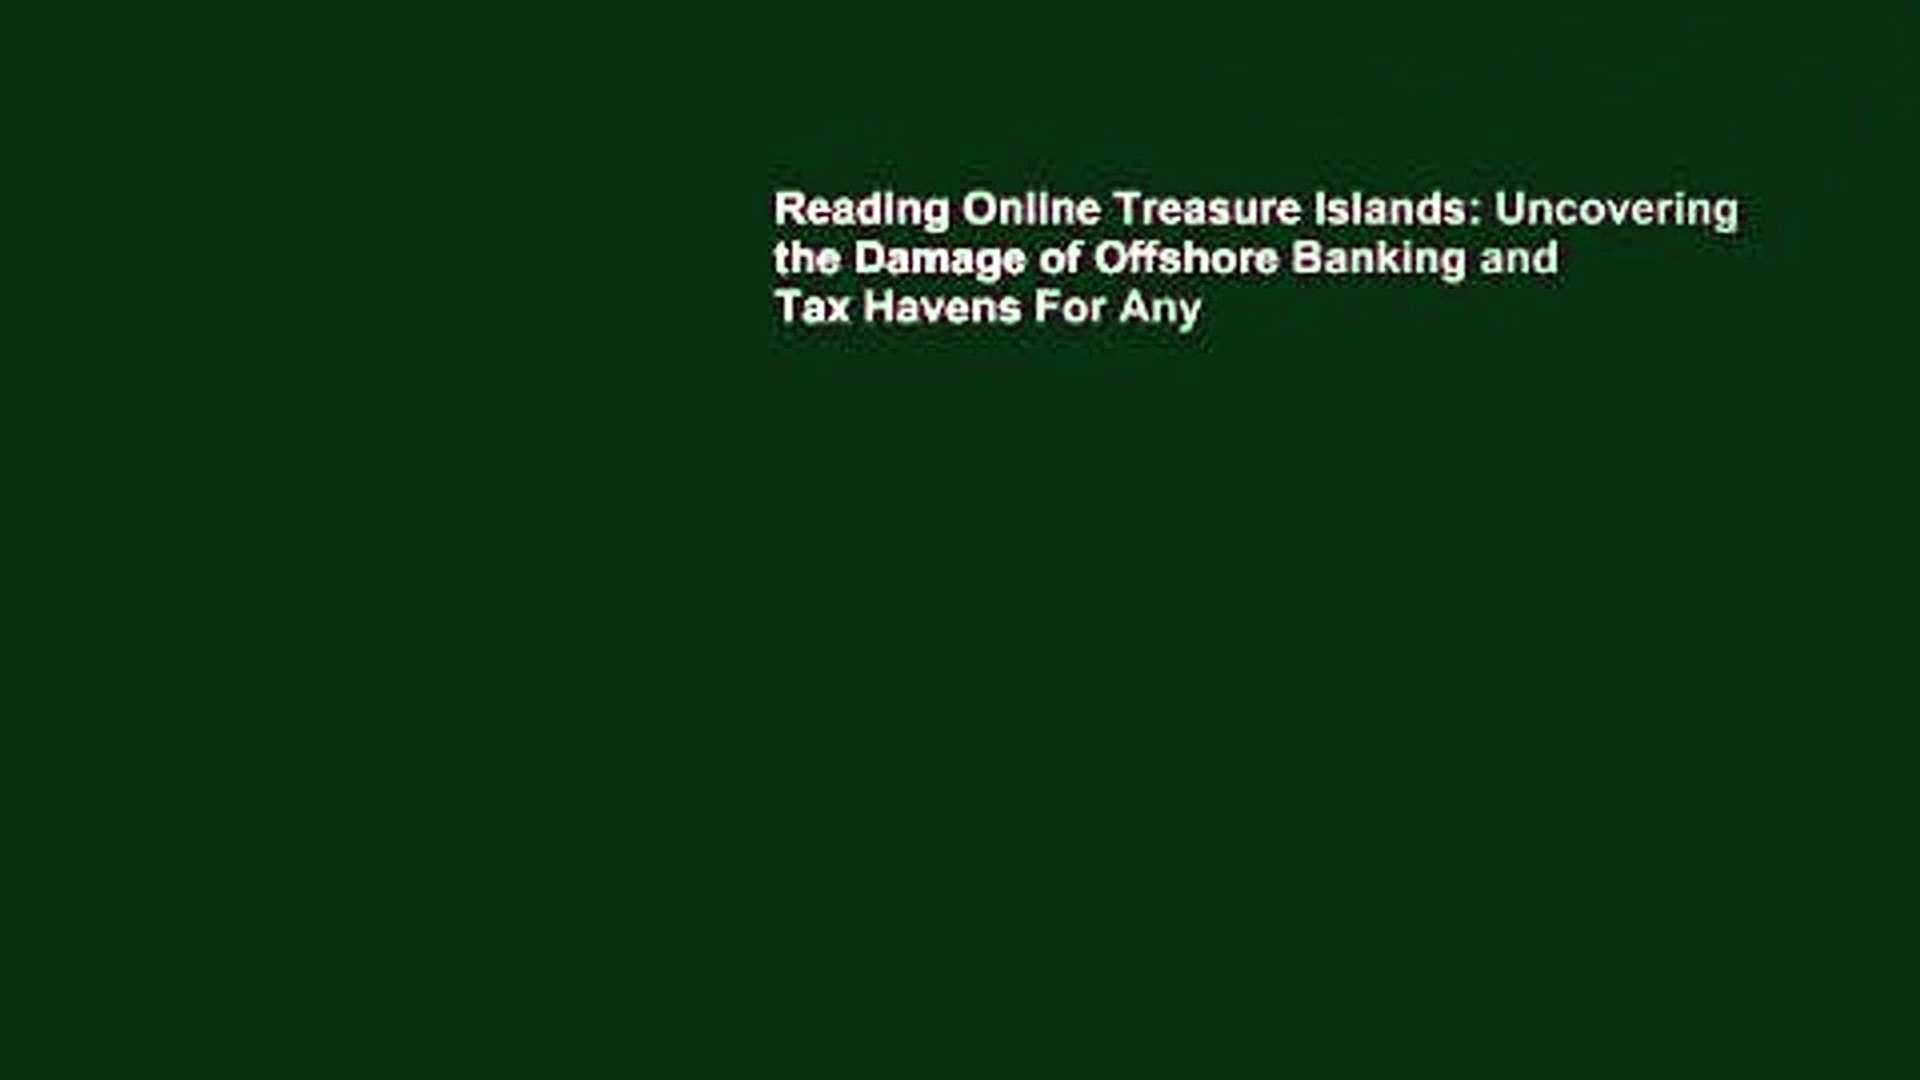 Reading Online Treasure Islands: Uncovering the Damage of Offshore Banking and Tax Havens For Any